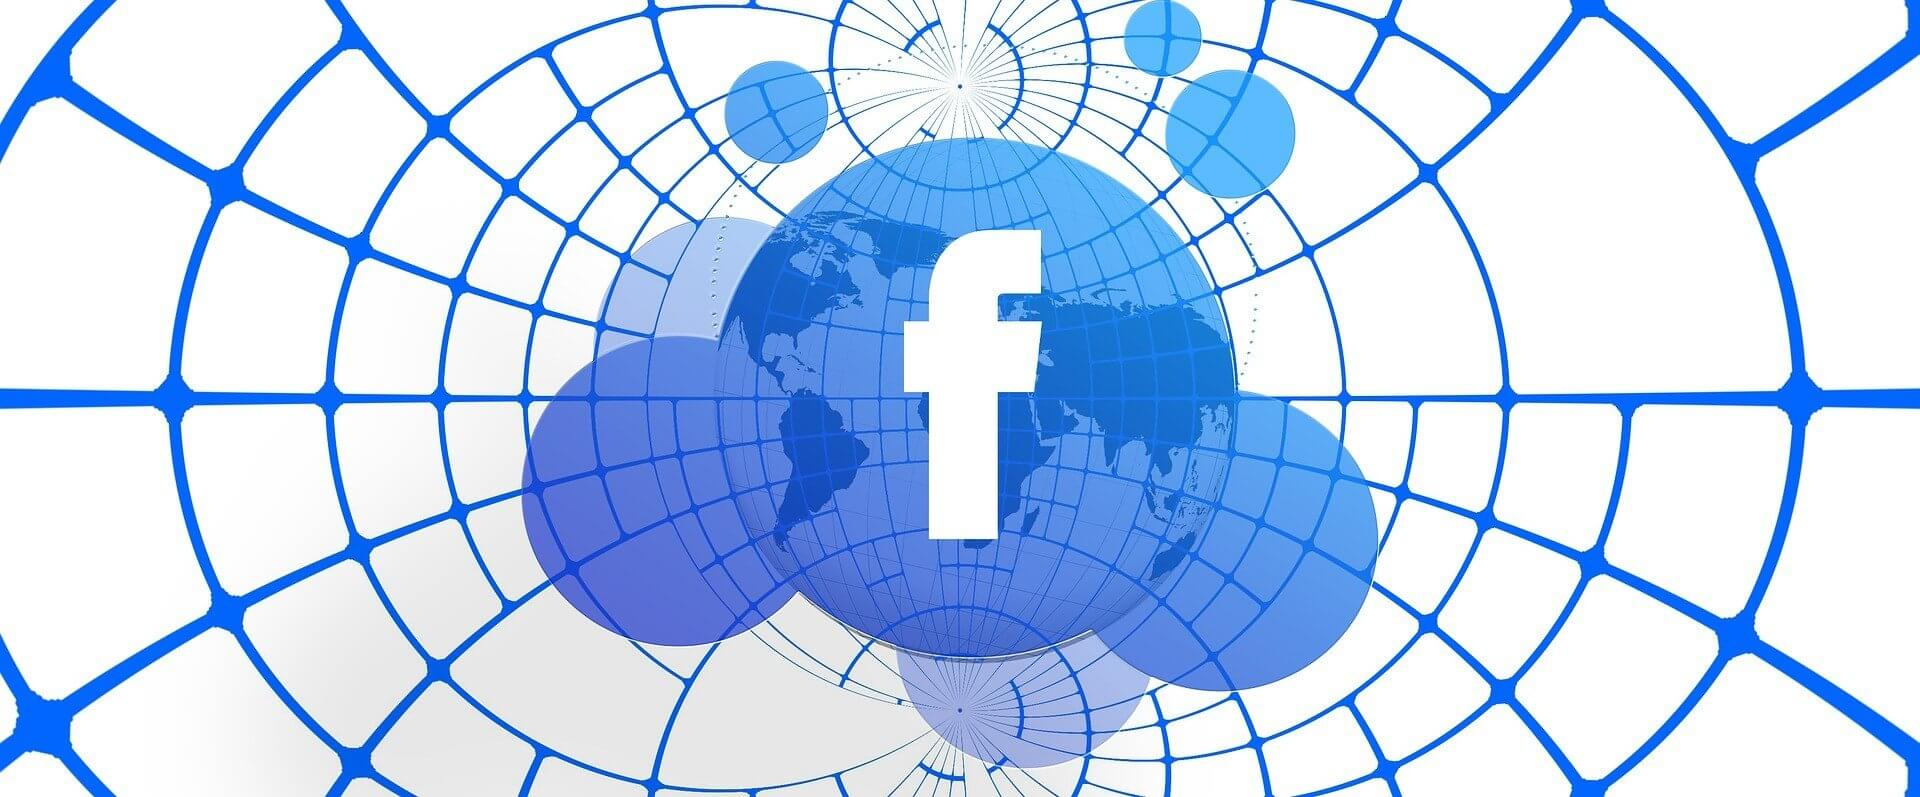 facebook logo on net background